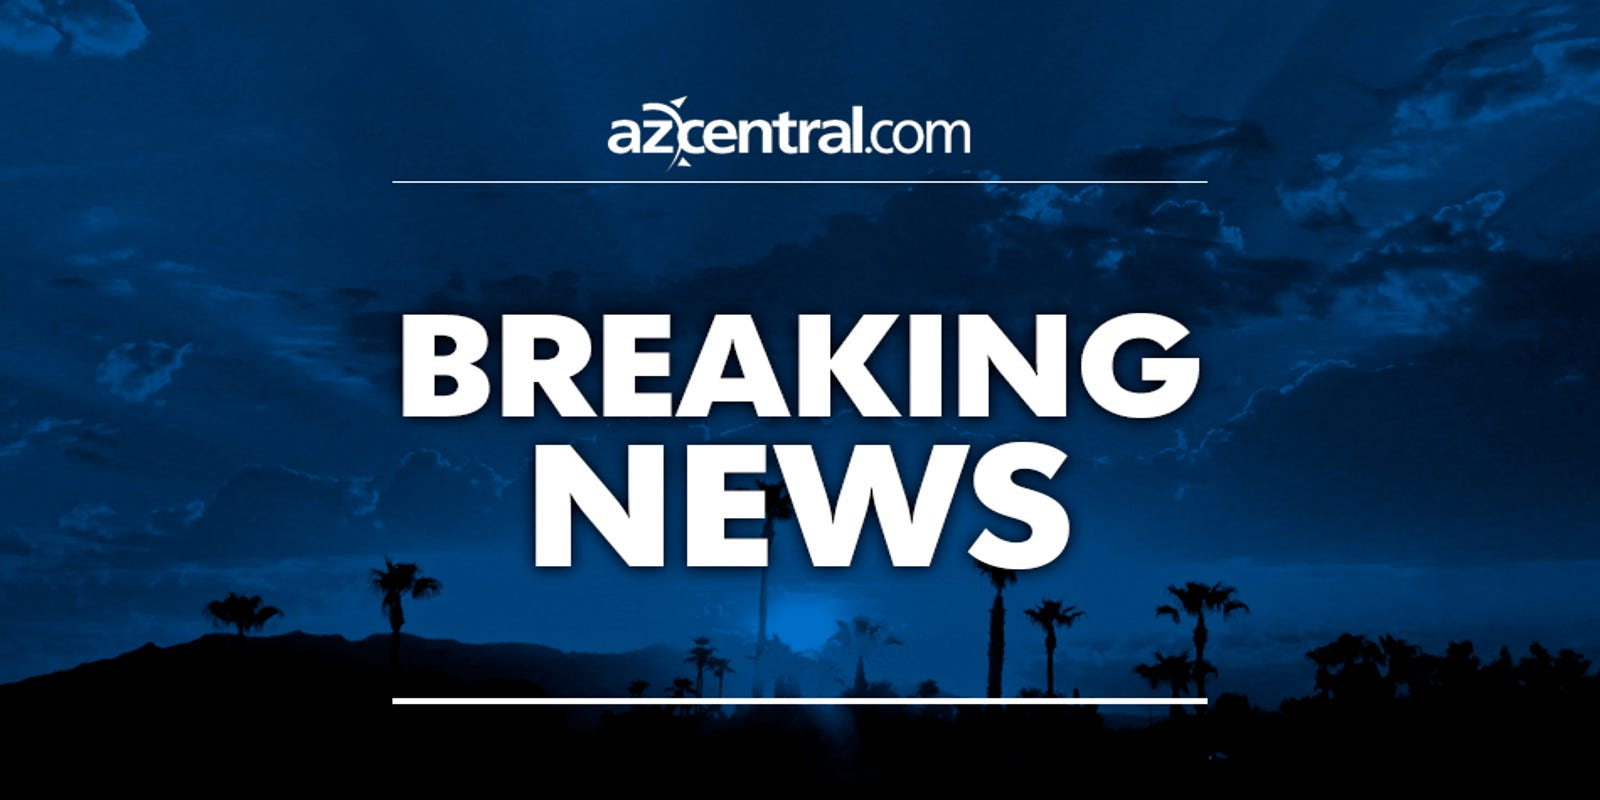 2 arrested after robbery suspect barricaded inside west Phoenix residence